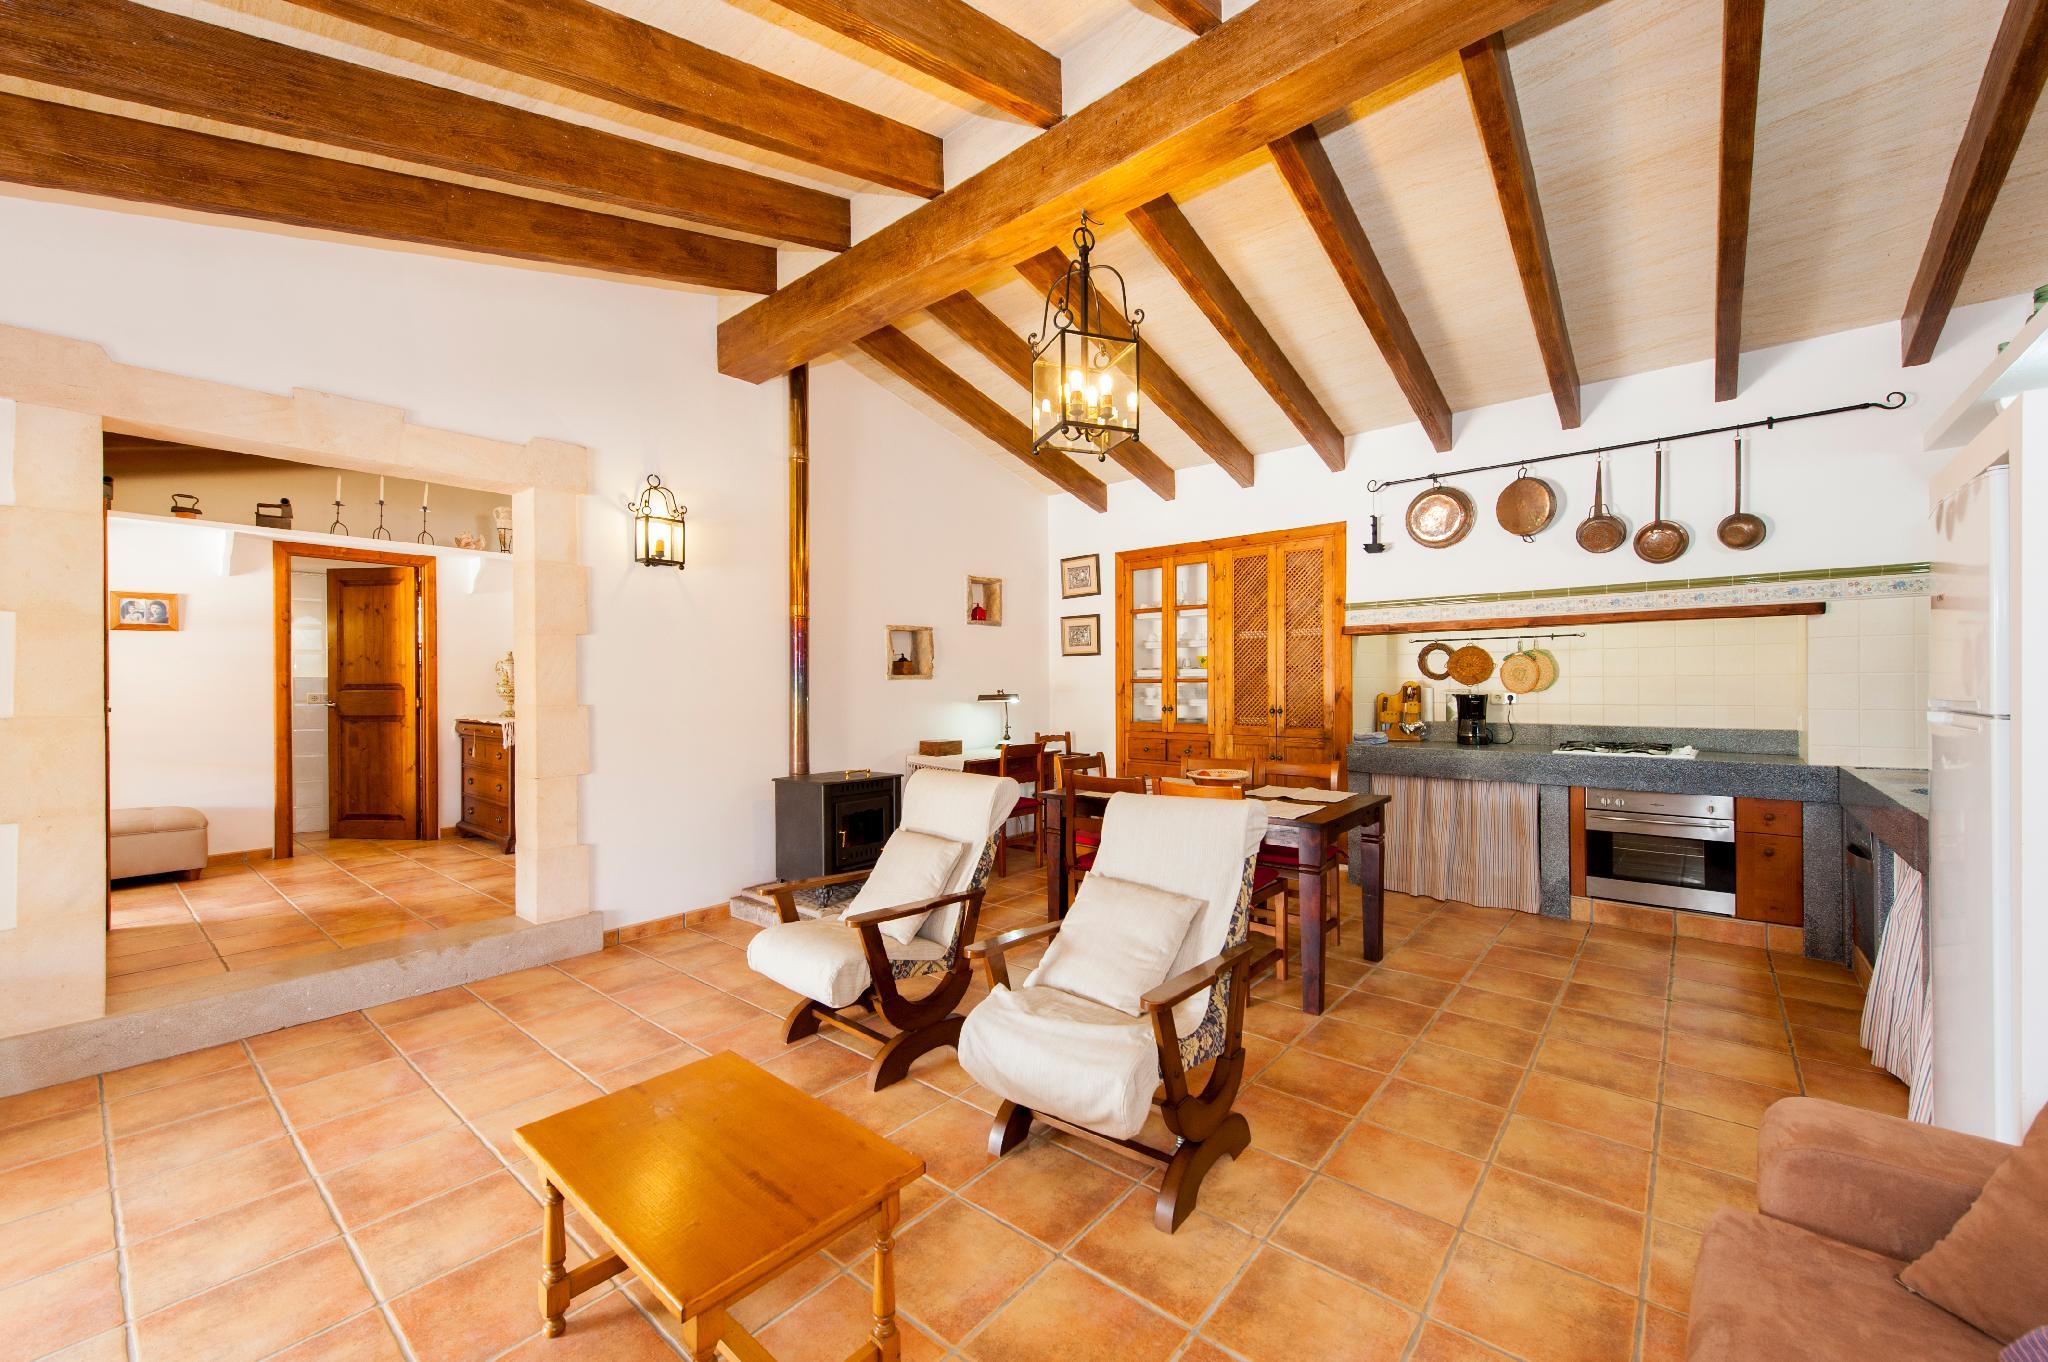 Villa for 2 people in the countryside with private pool, wifi, located near Sant